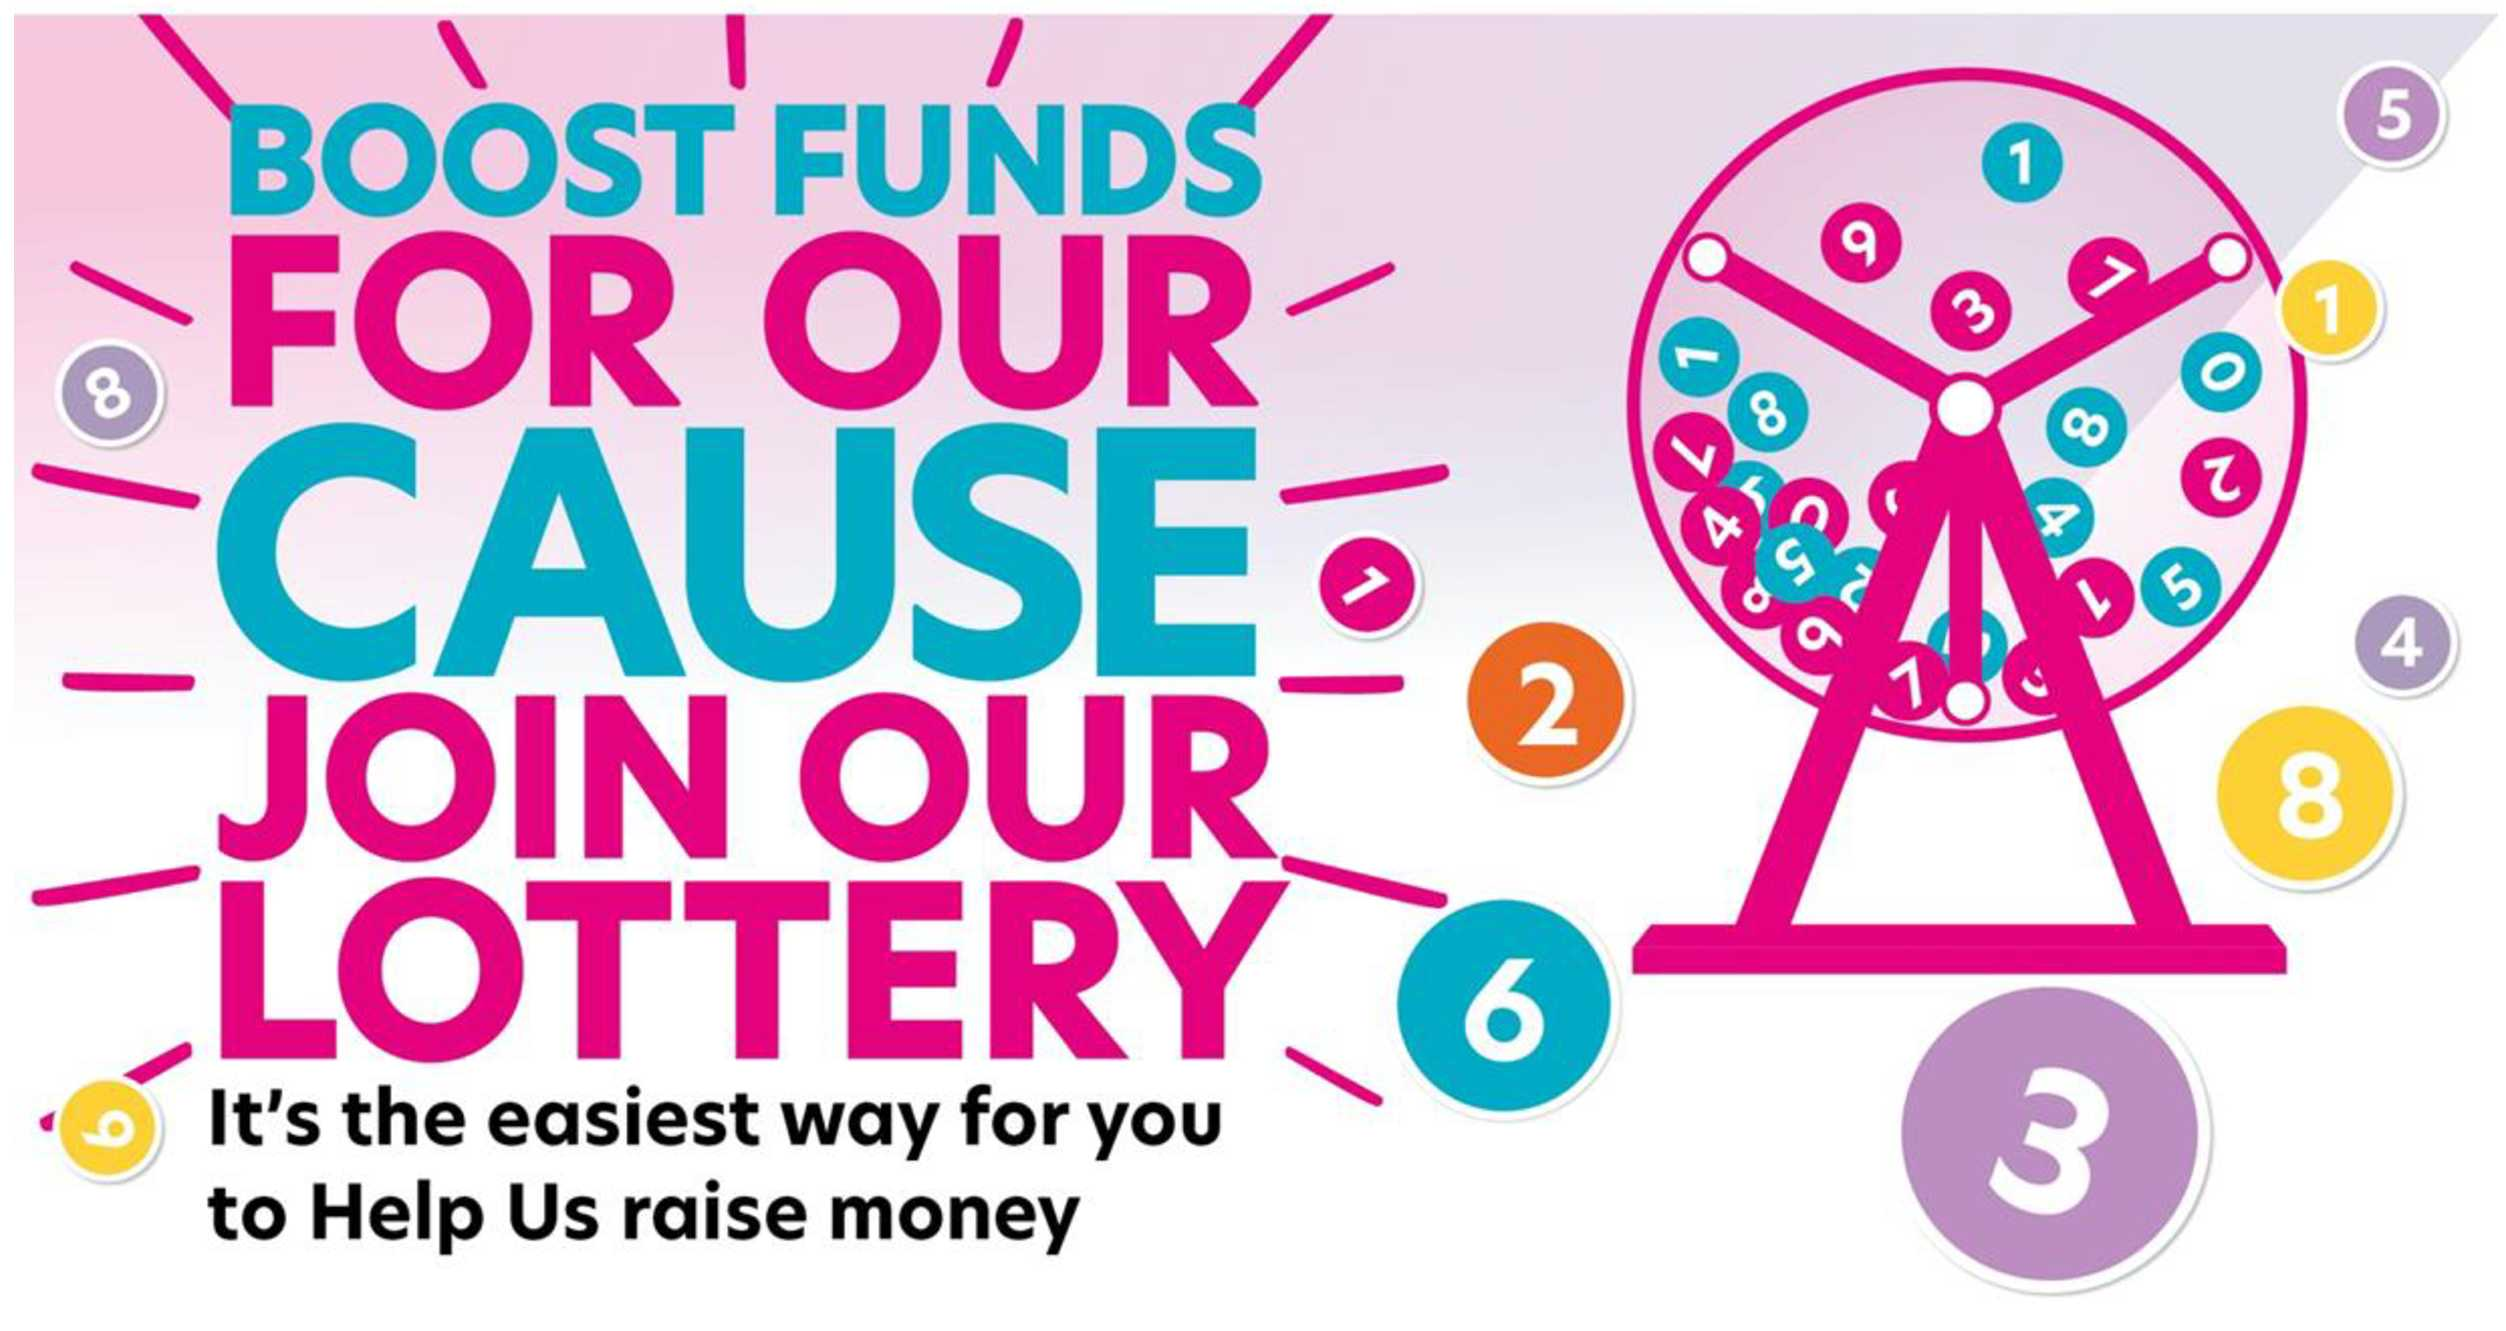 We have launched a Lottery.  The exciting New Way to Support Our Cause.